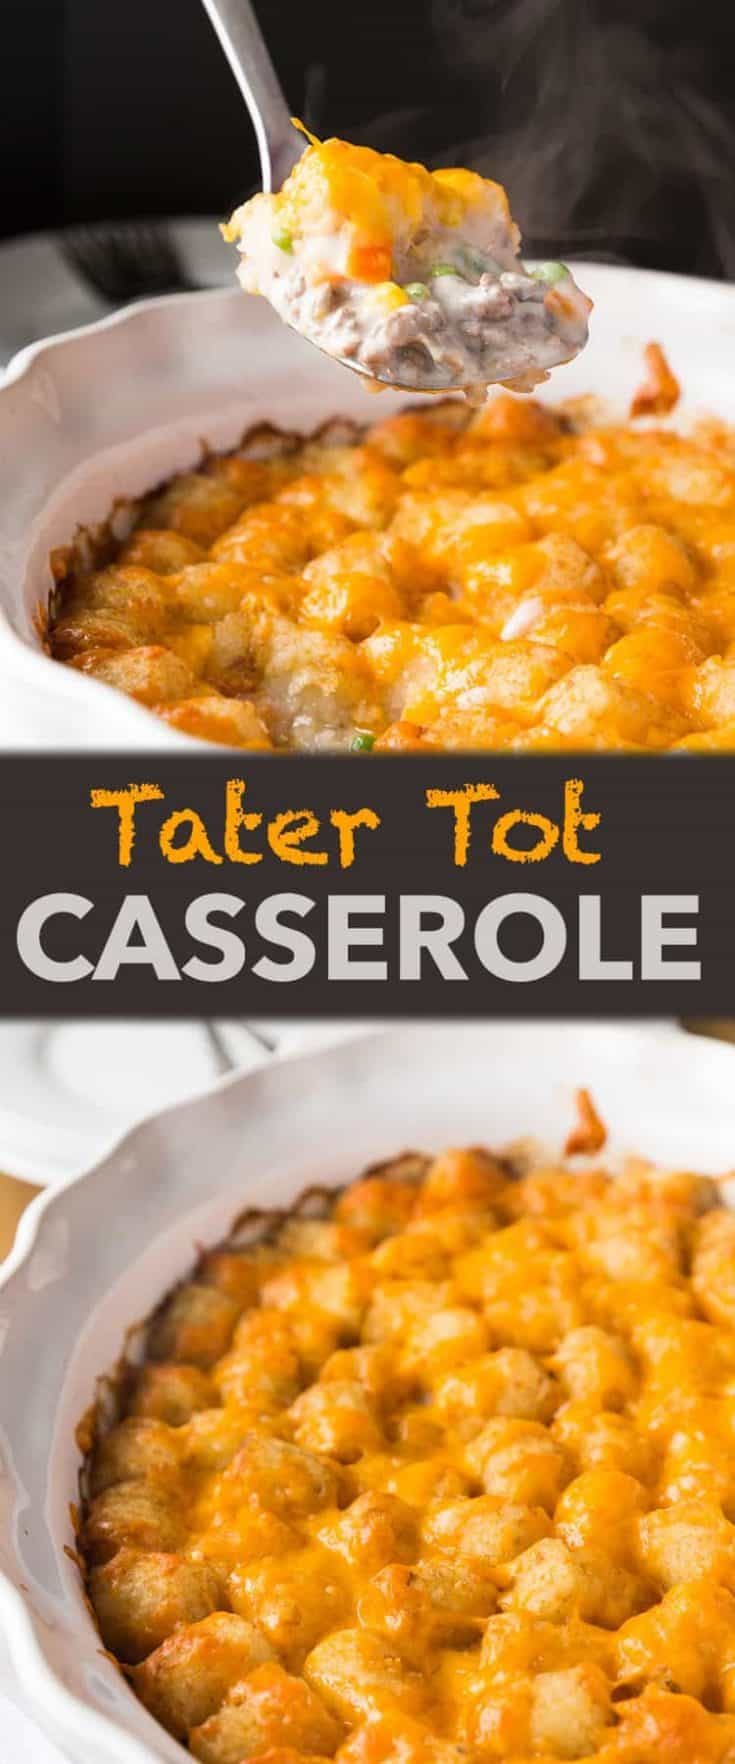 Tater Tot Casserole is a fun recipe that is easy to make and a one-dish meal that is most definitely kid-approved! #tatertot #tatertotcasserole #casserole #easyrecipe